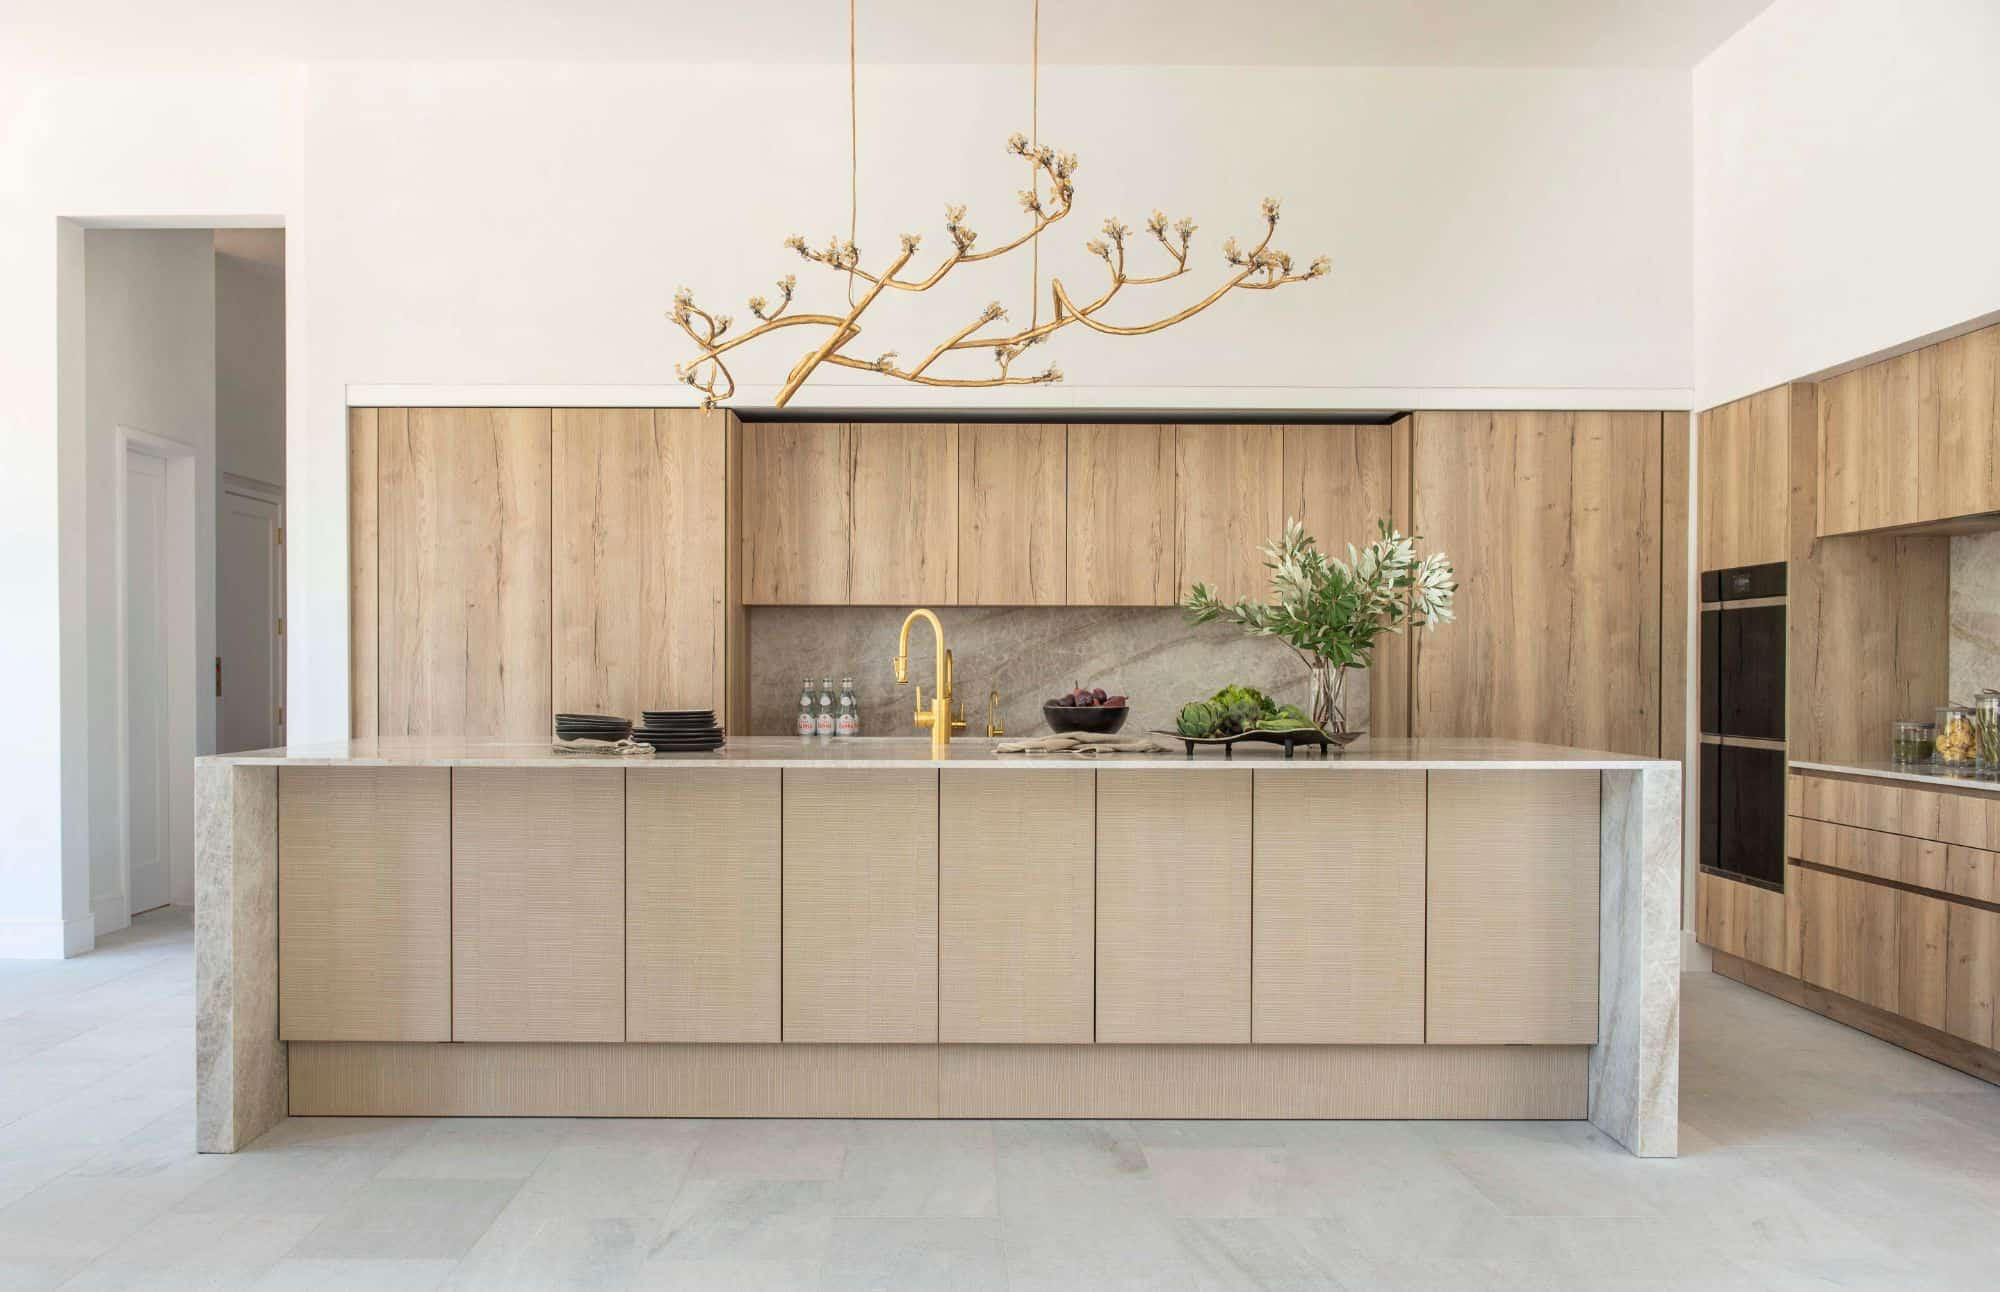 woodsy yet modern kitchen in light wood tones and marble by eggersmann